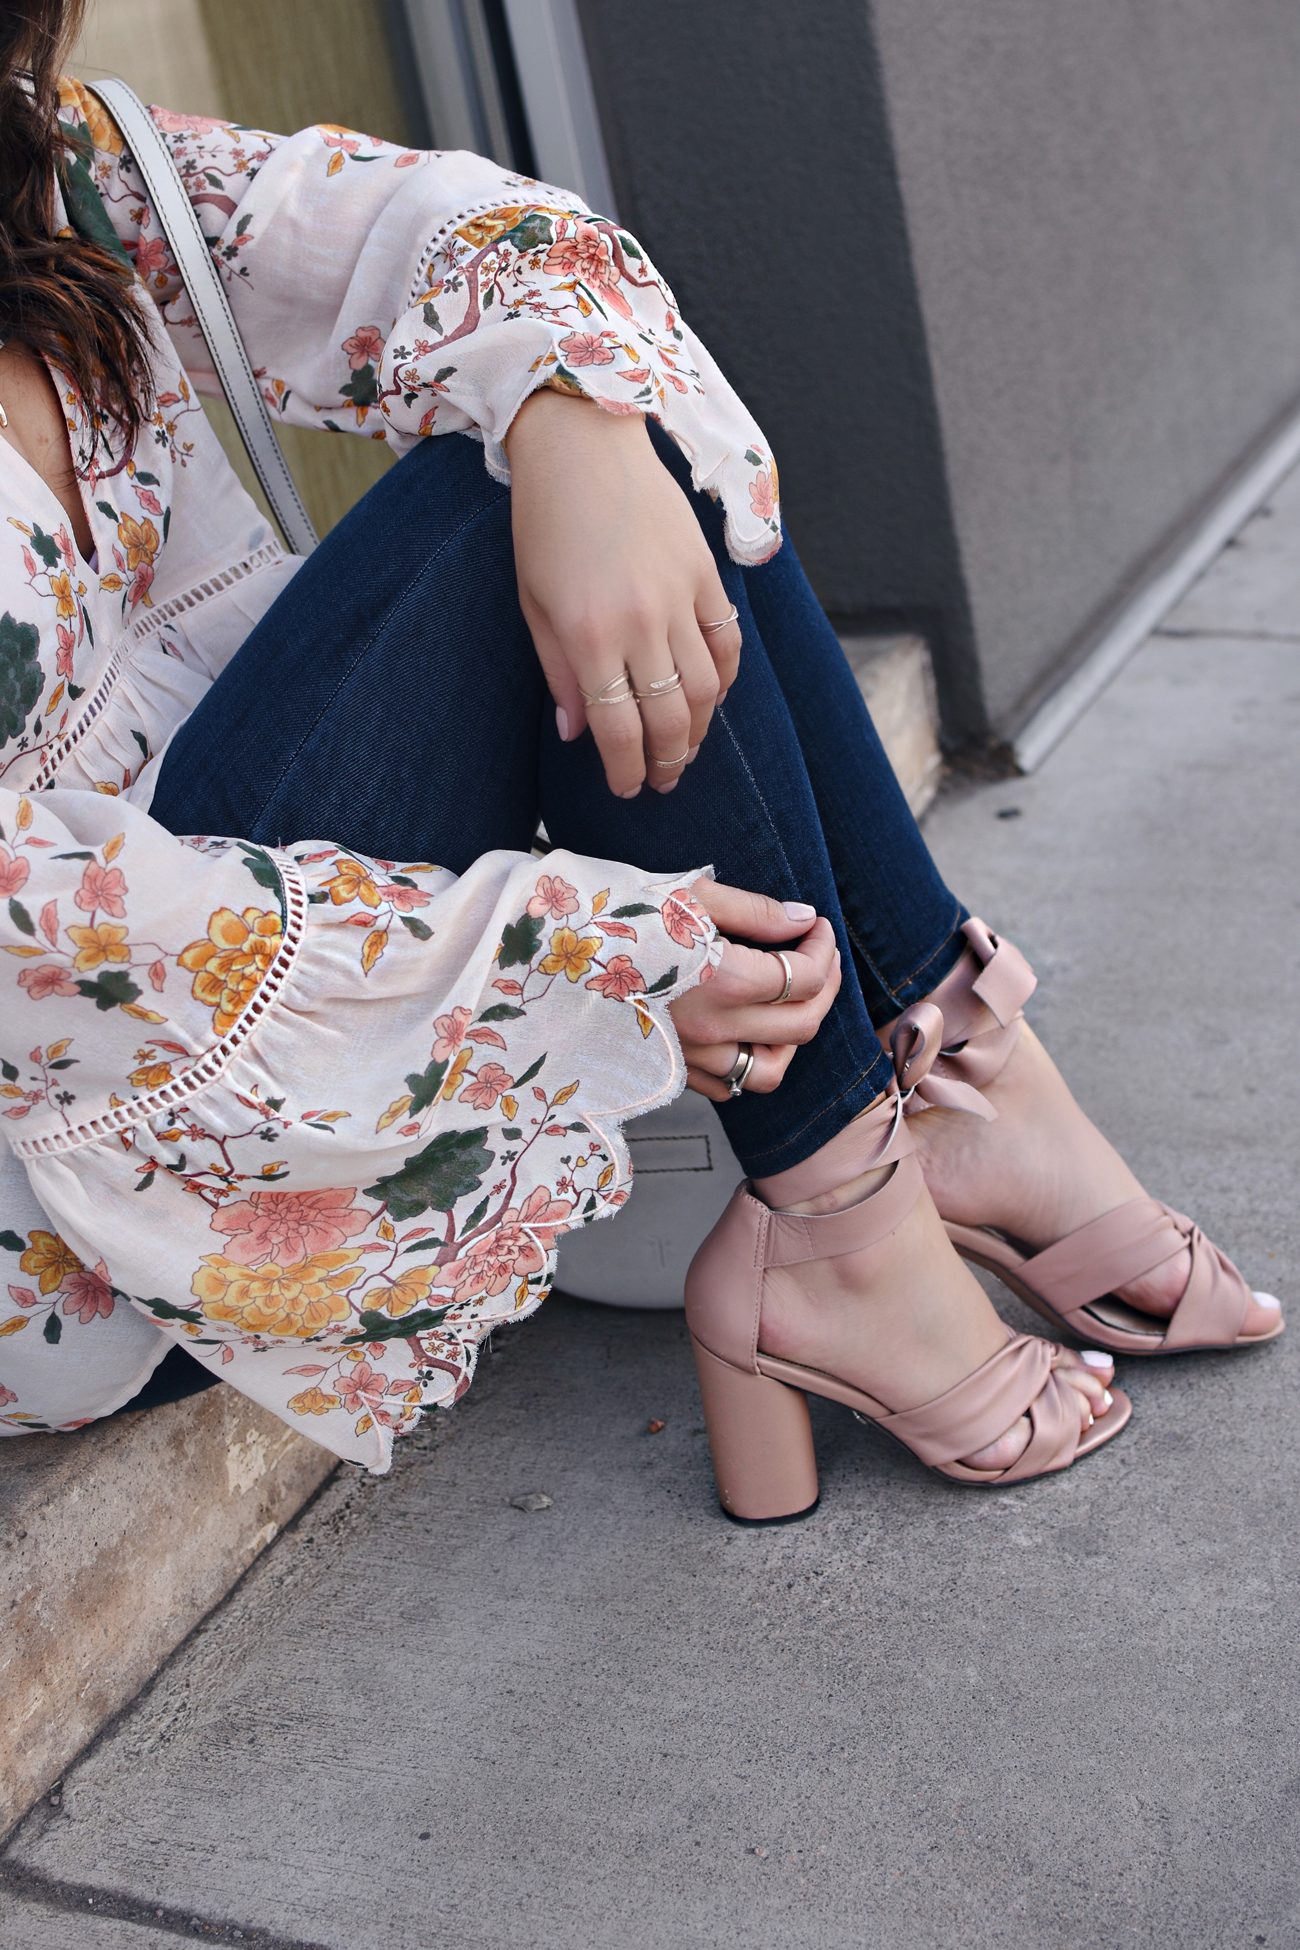 Carolina Hellal of Chic Talk wearing a Floral top, Paige skinny jeans, topshop blush sandals, and Frye white crossbody bag